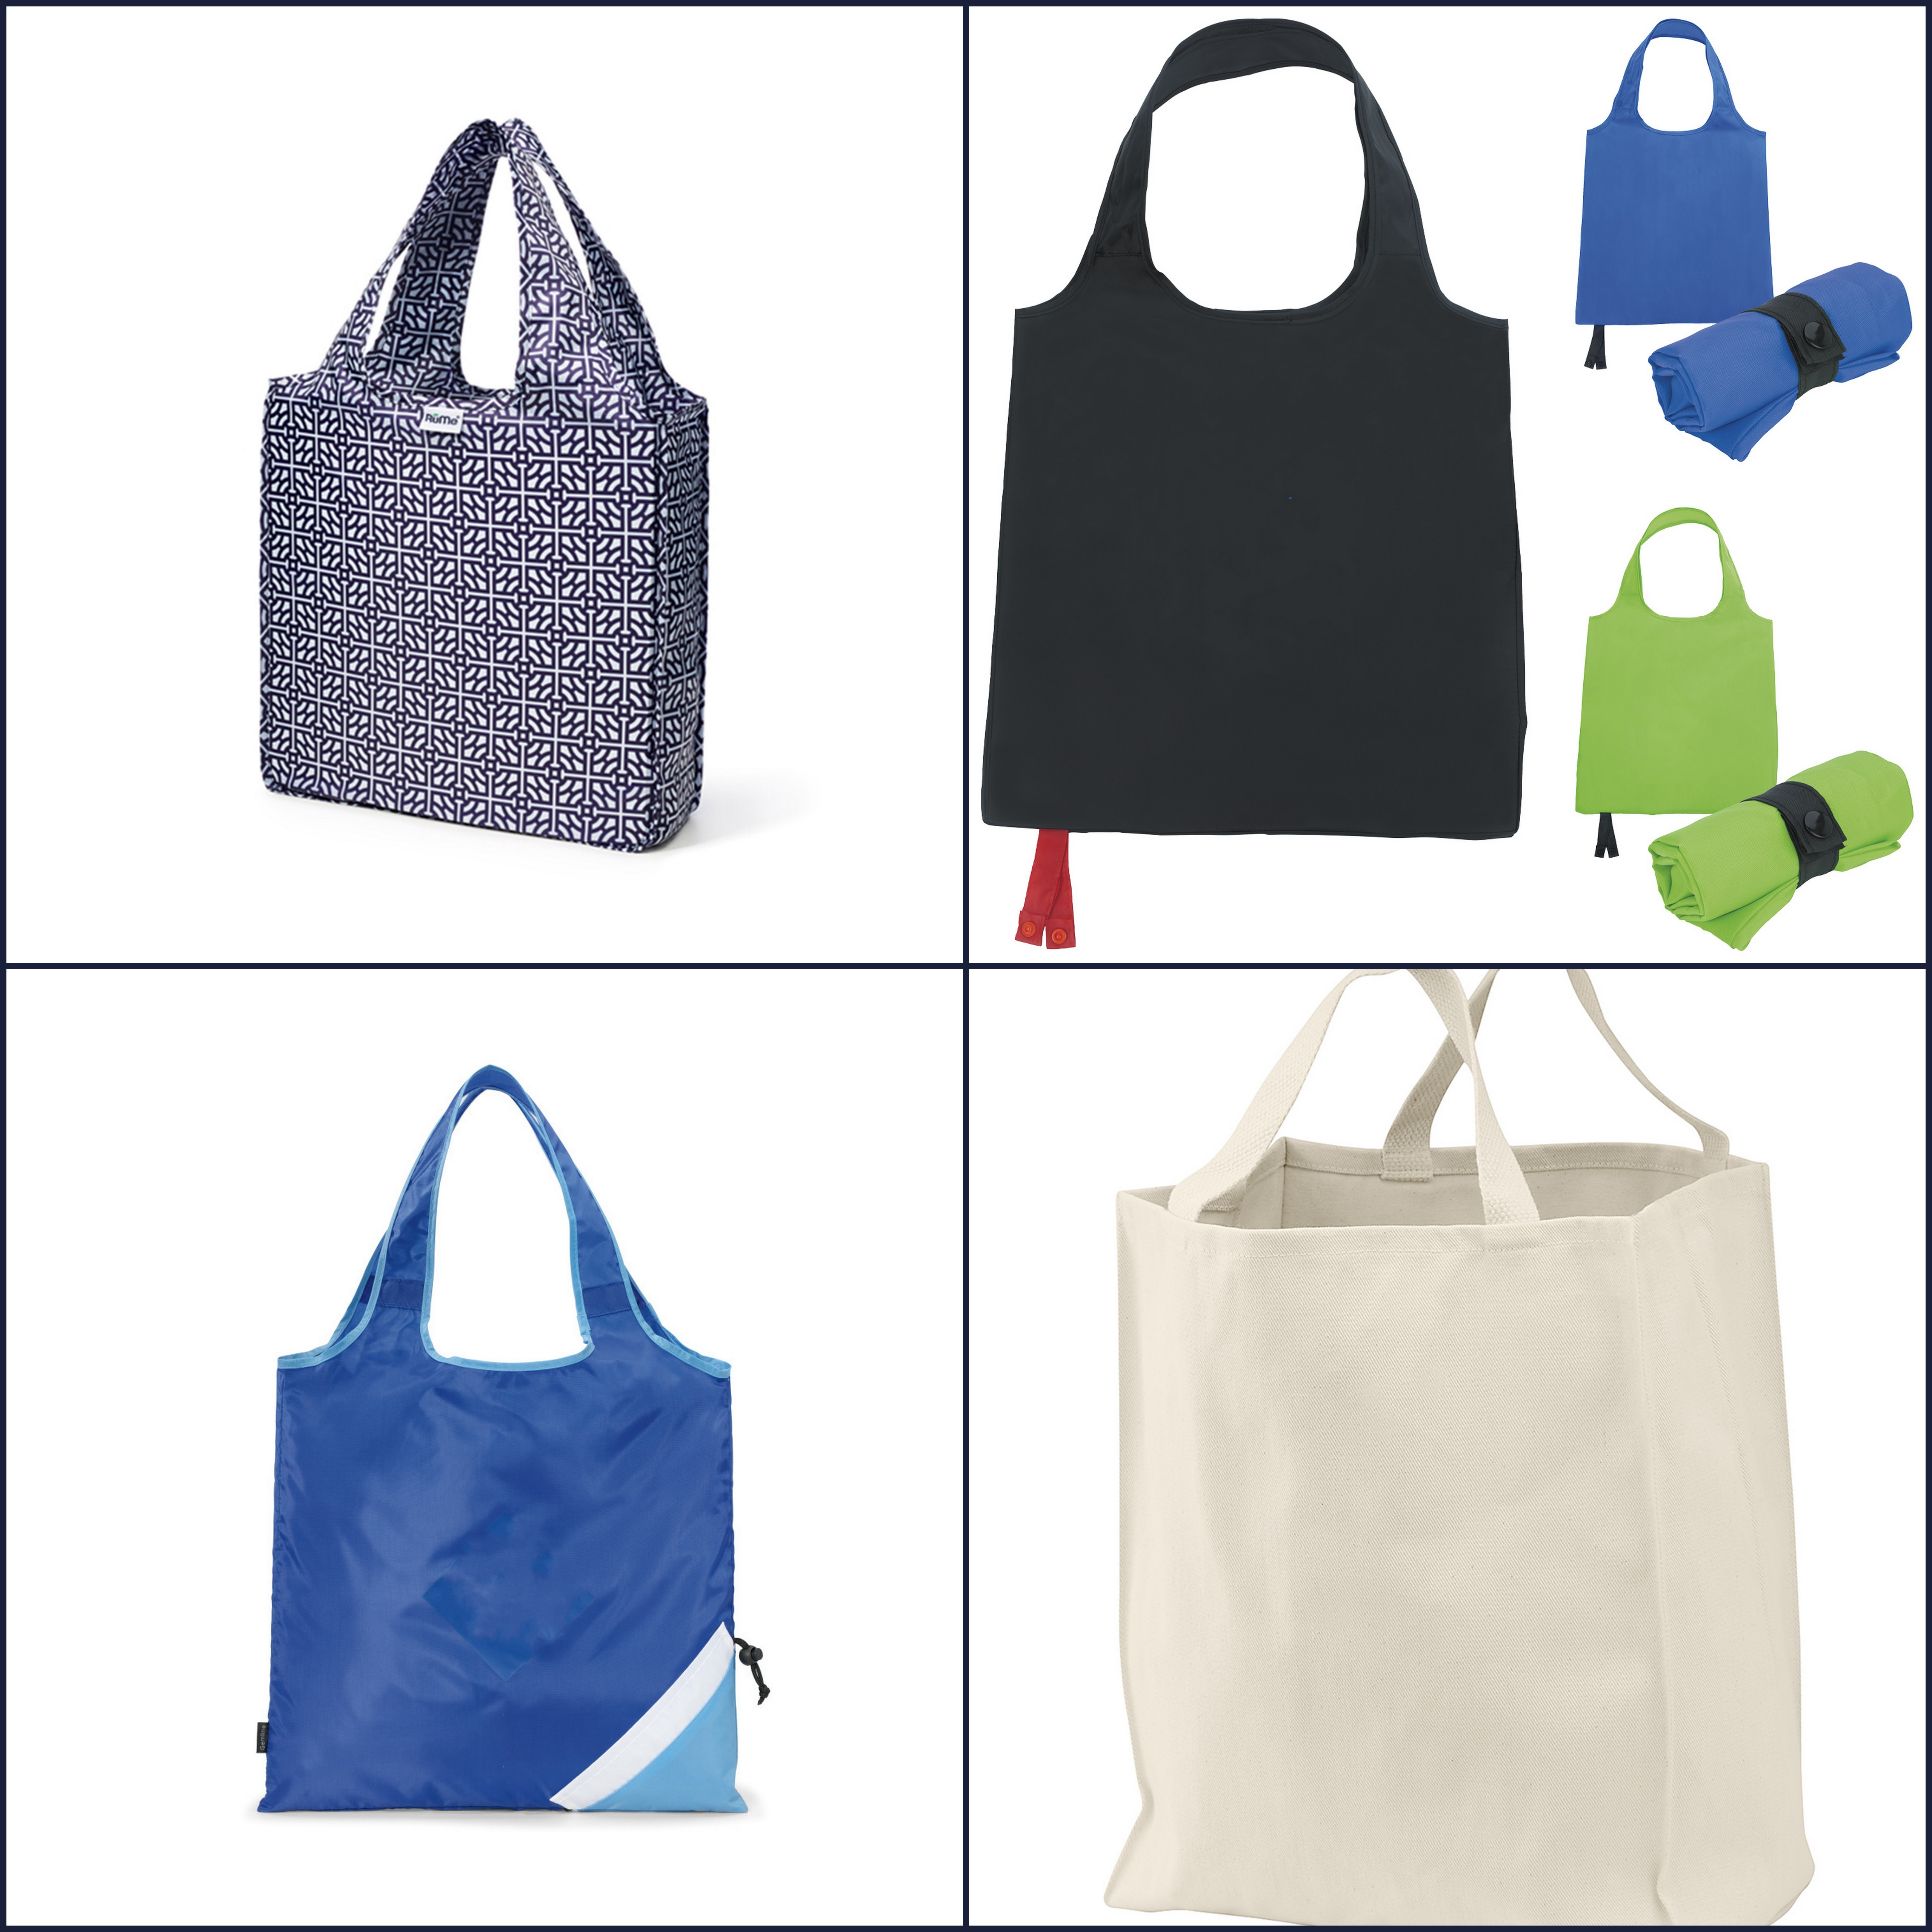 Foldable Reusable Bags from NYFifth